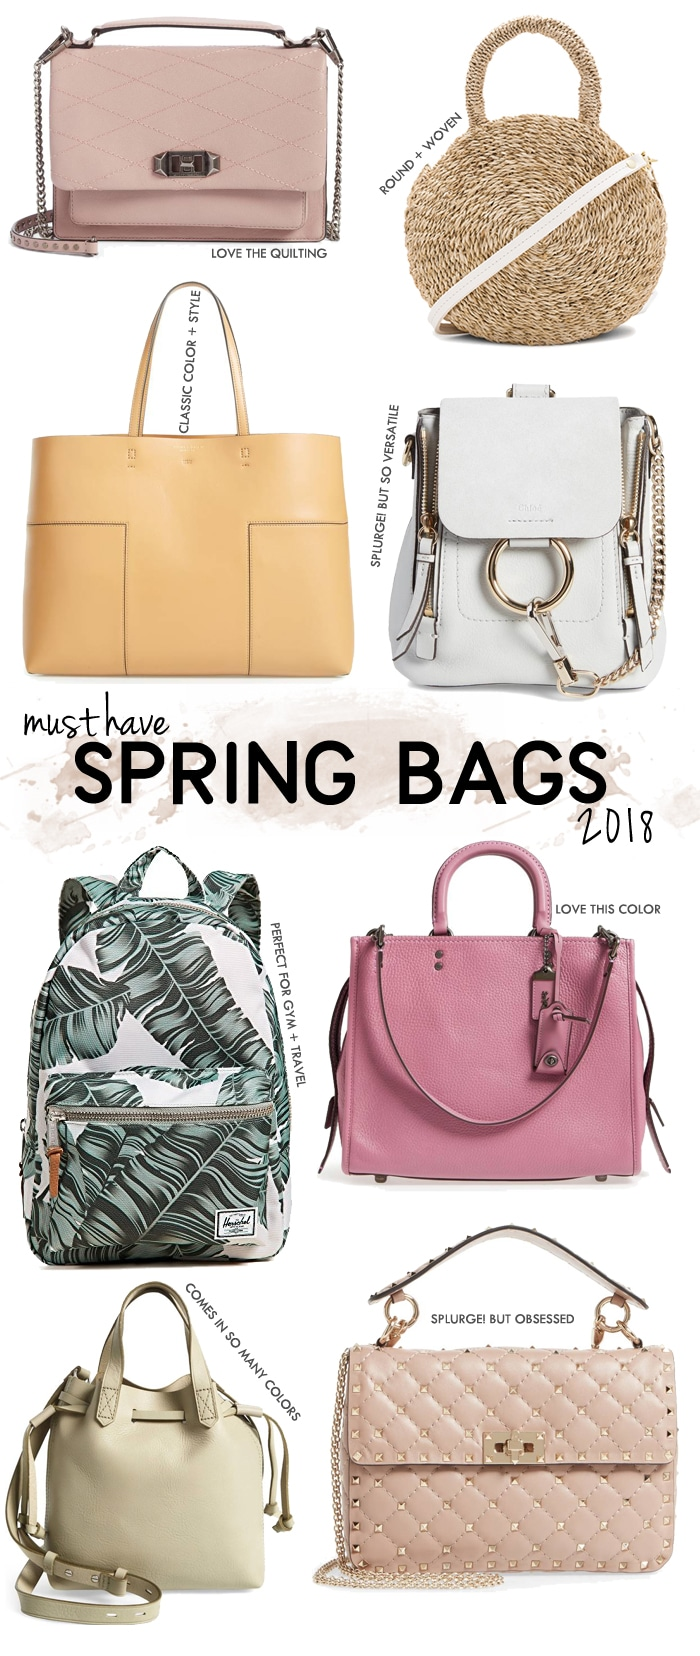 Must Have Wedding Poses: Must-Have Spring Bags 2018